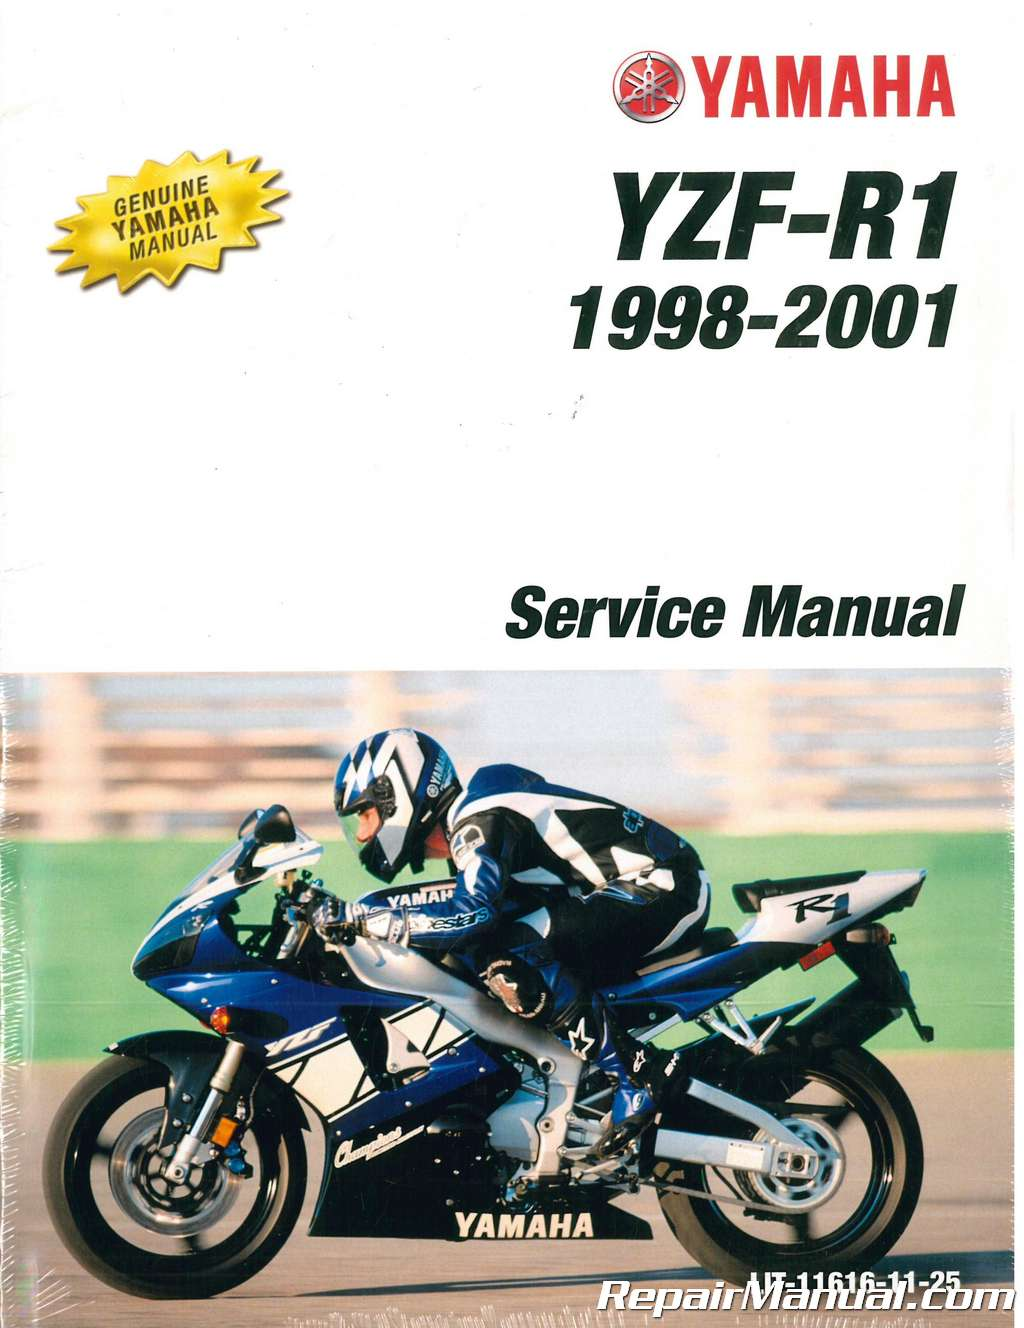 1998 2001 Yamaha Yzf1000r R1 Service Manual border=